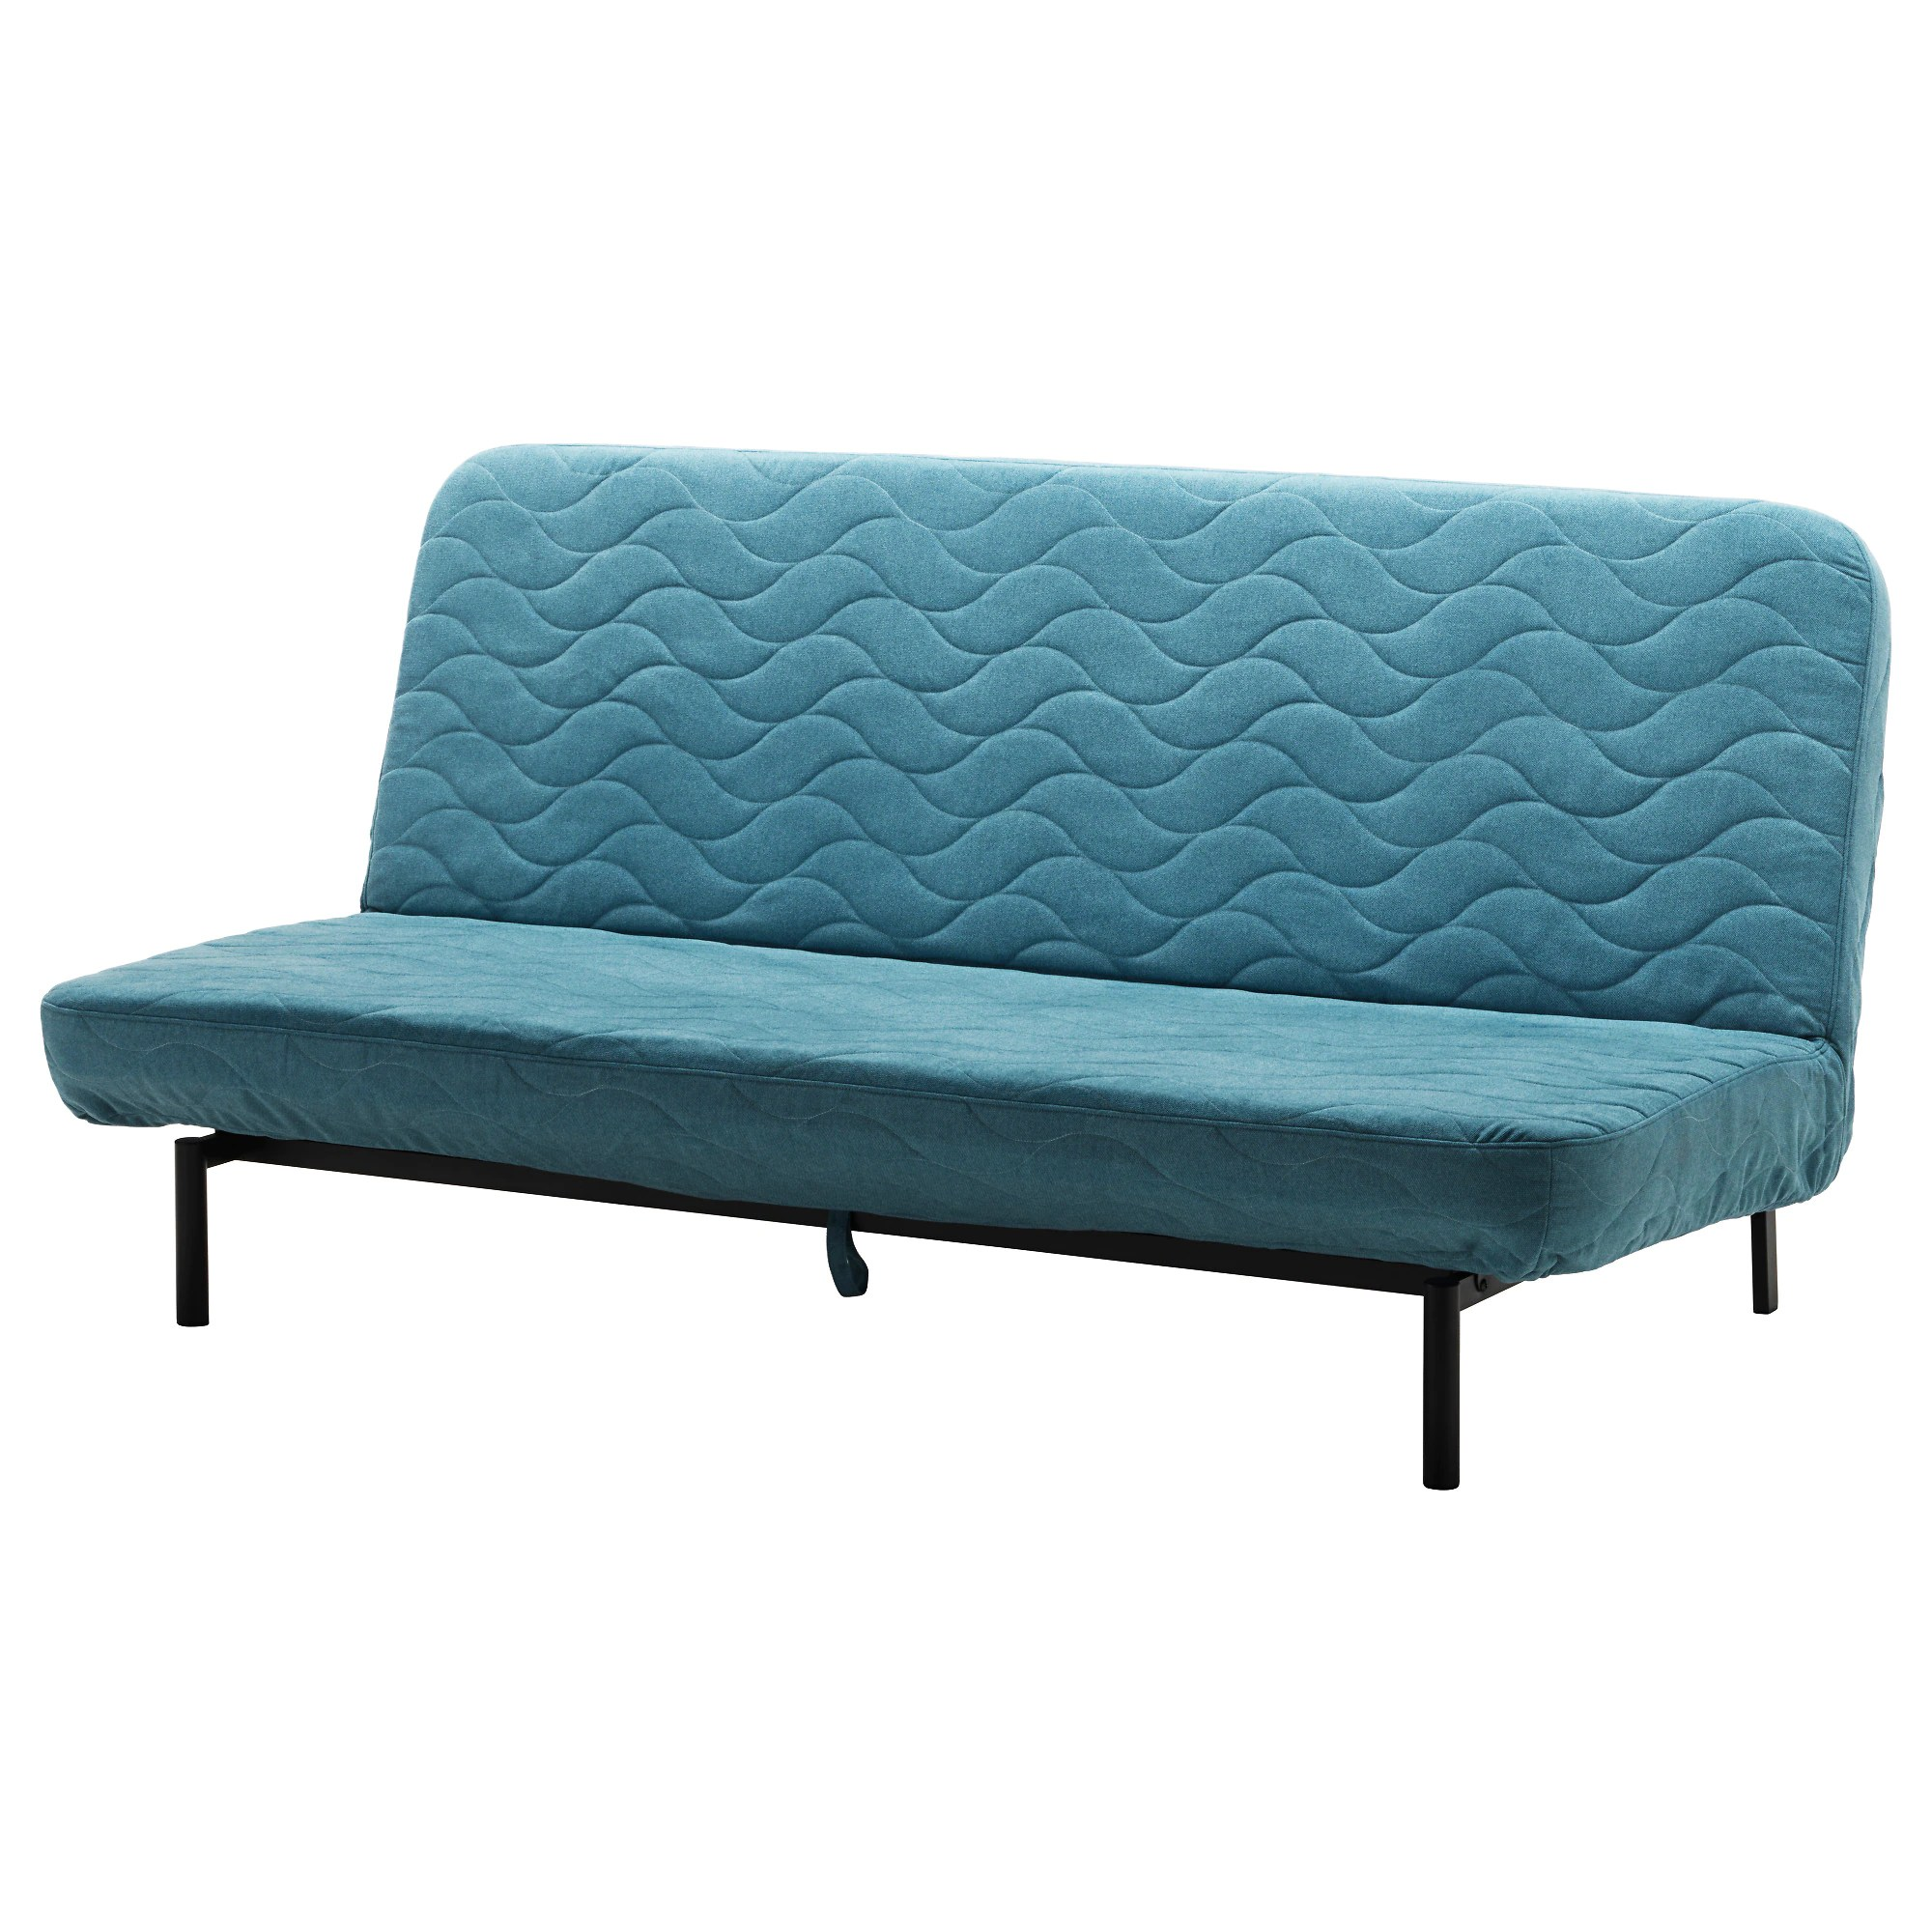 Bettsofa Ikea Blau Nyhamn Sleeper Sofa With Pocket Spring Mattress Borred Green Blue